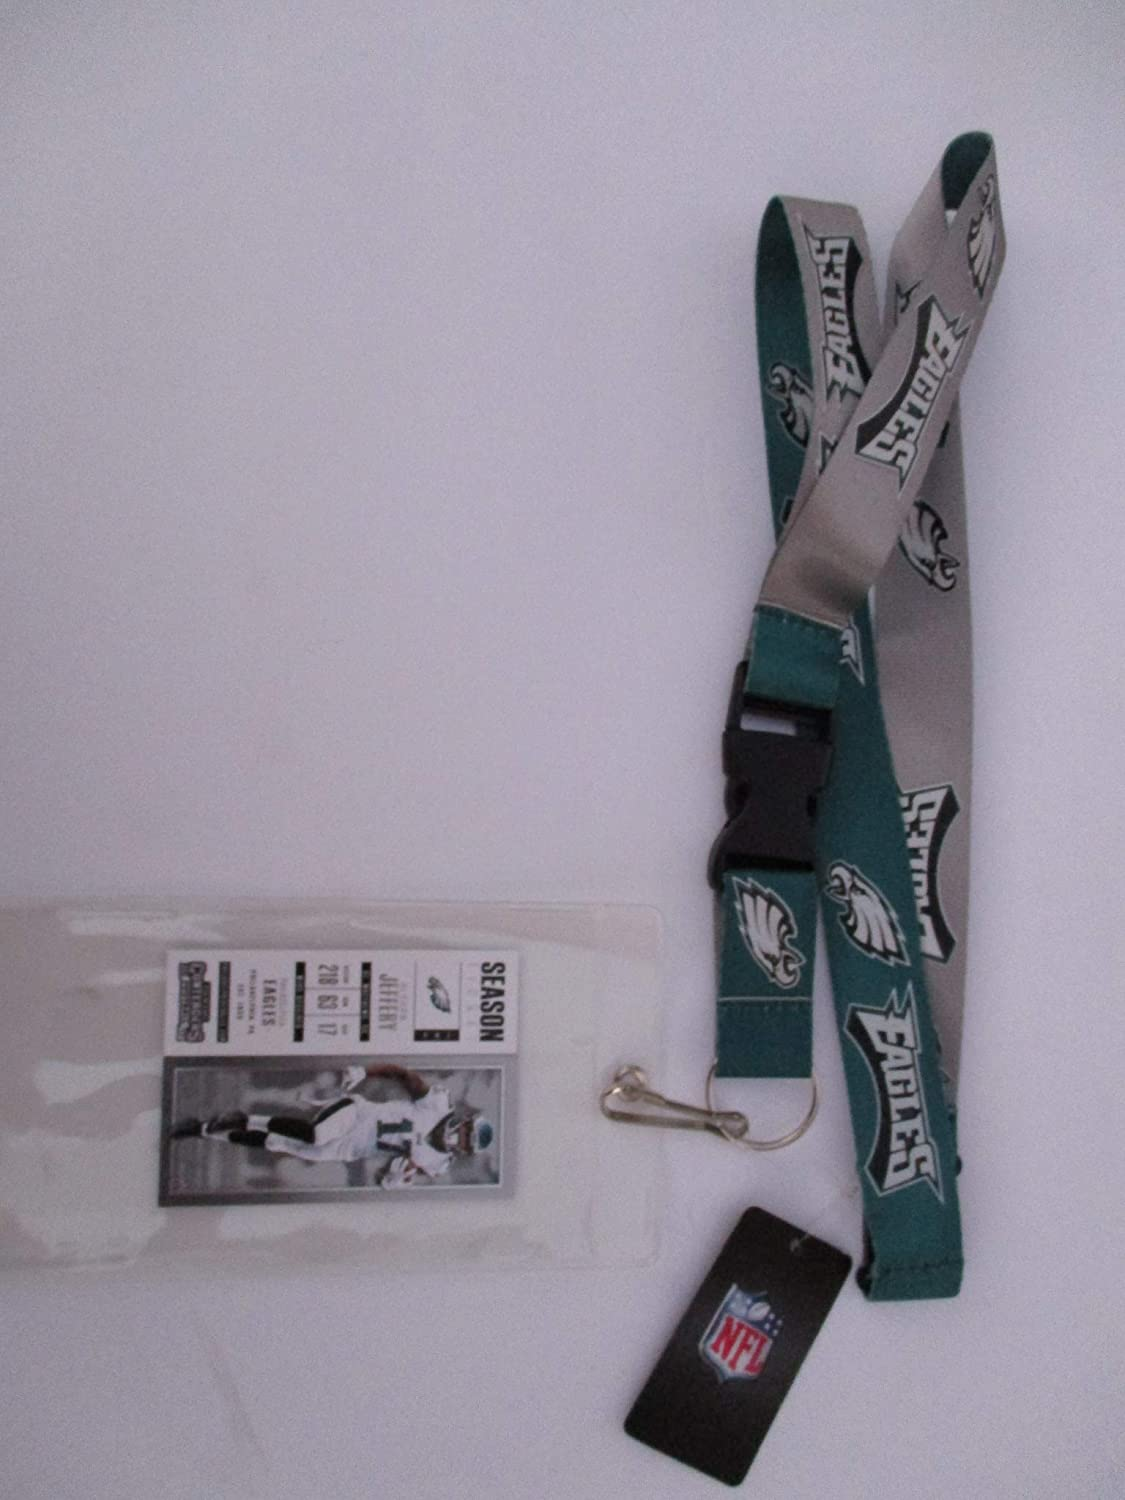 PHILADELPHIA EAGLES TWO TONE LANYARD WITH TICKET HOLDER PLUS COLLECTIBLE PLAYER CARD